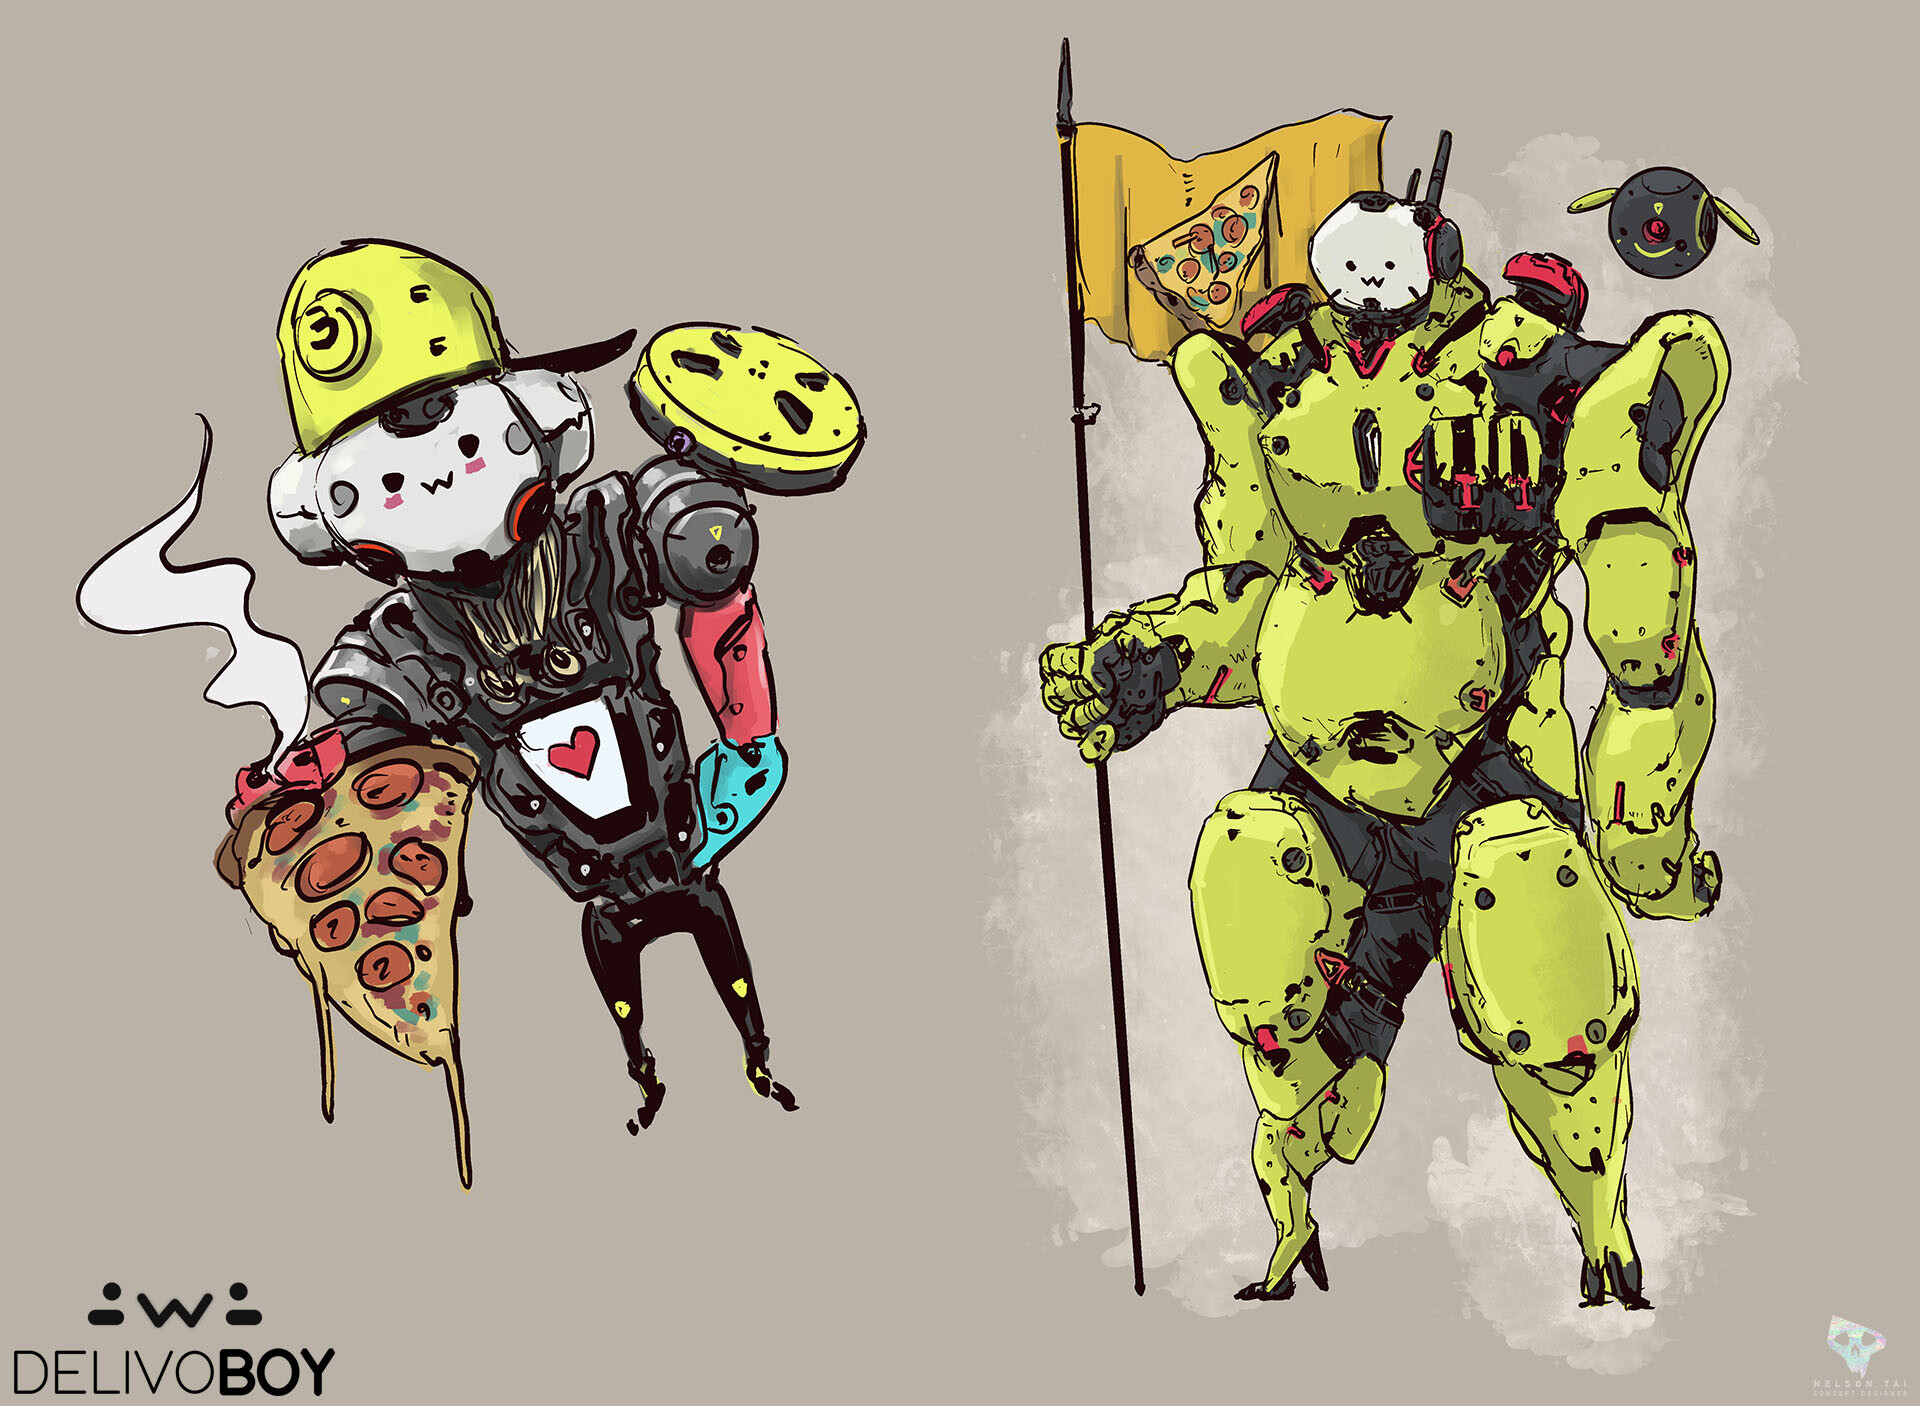 DelivoBoy loves pizza! He dreams to deliver to space as well!